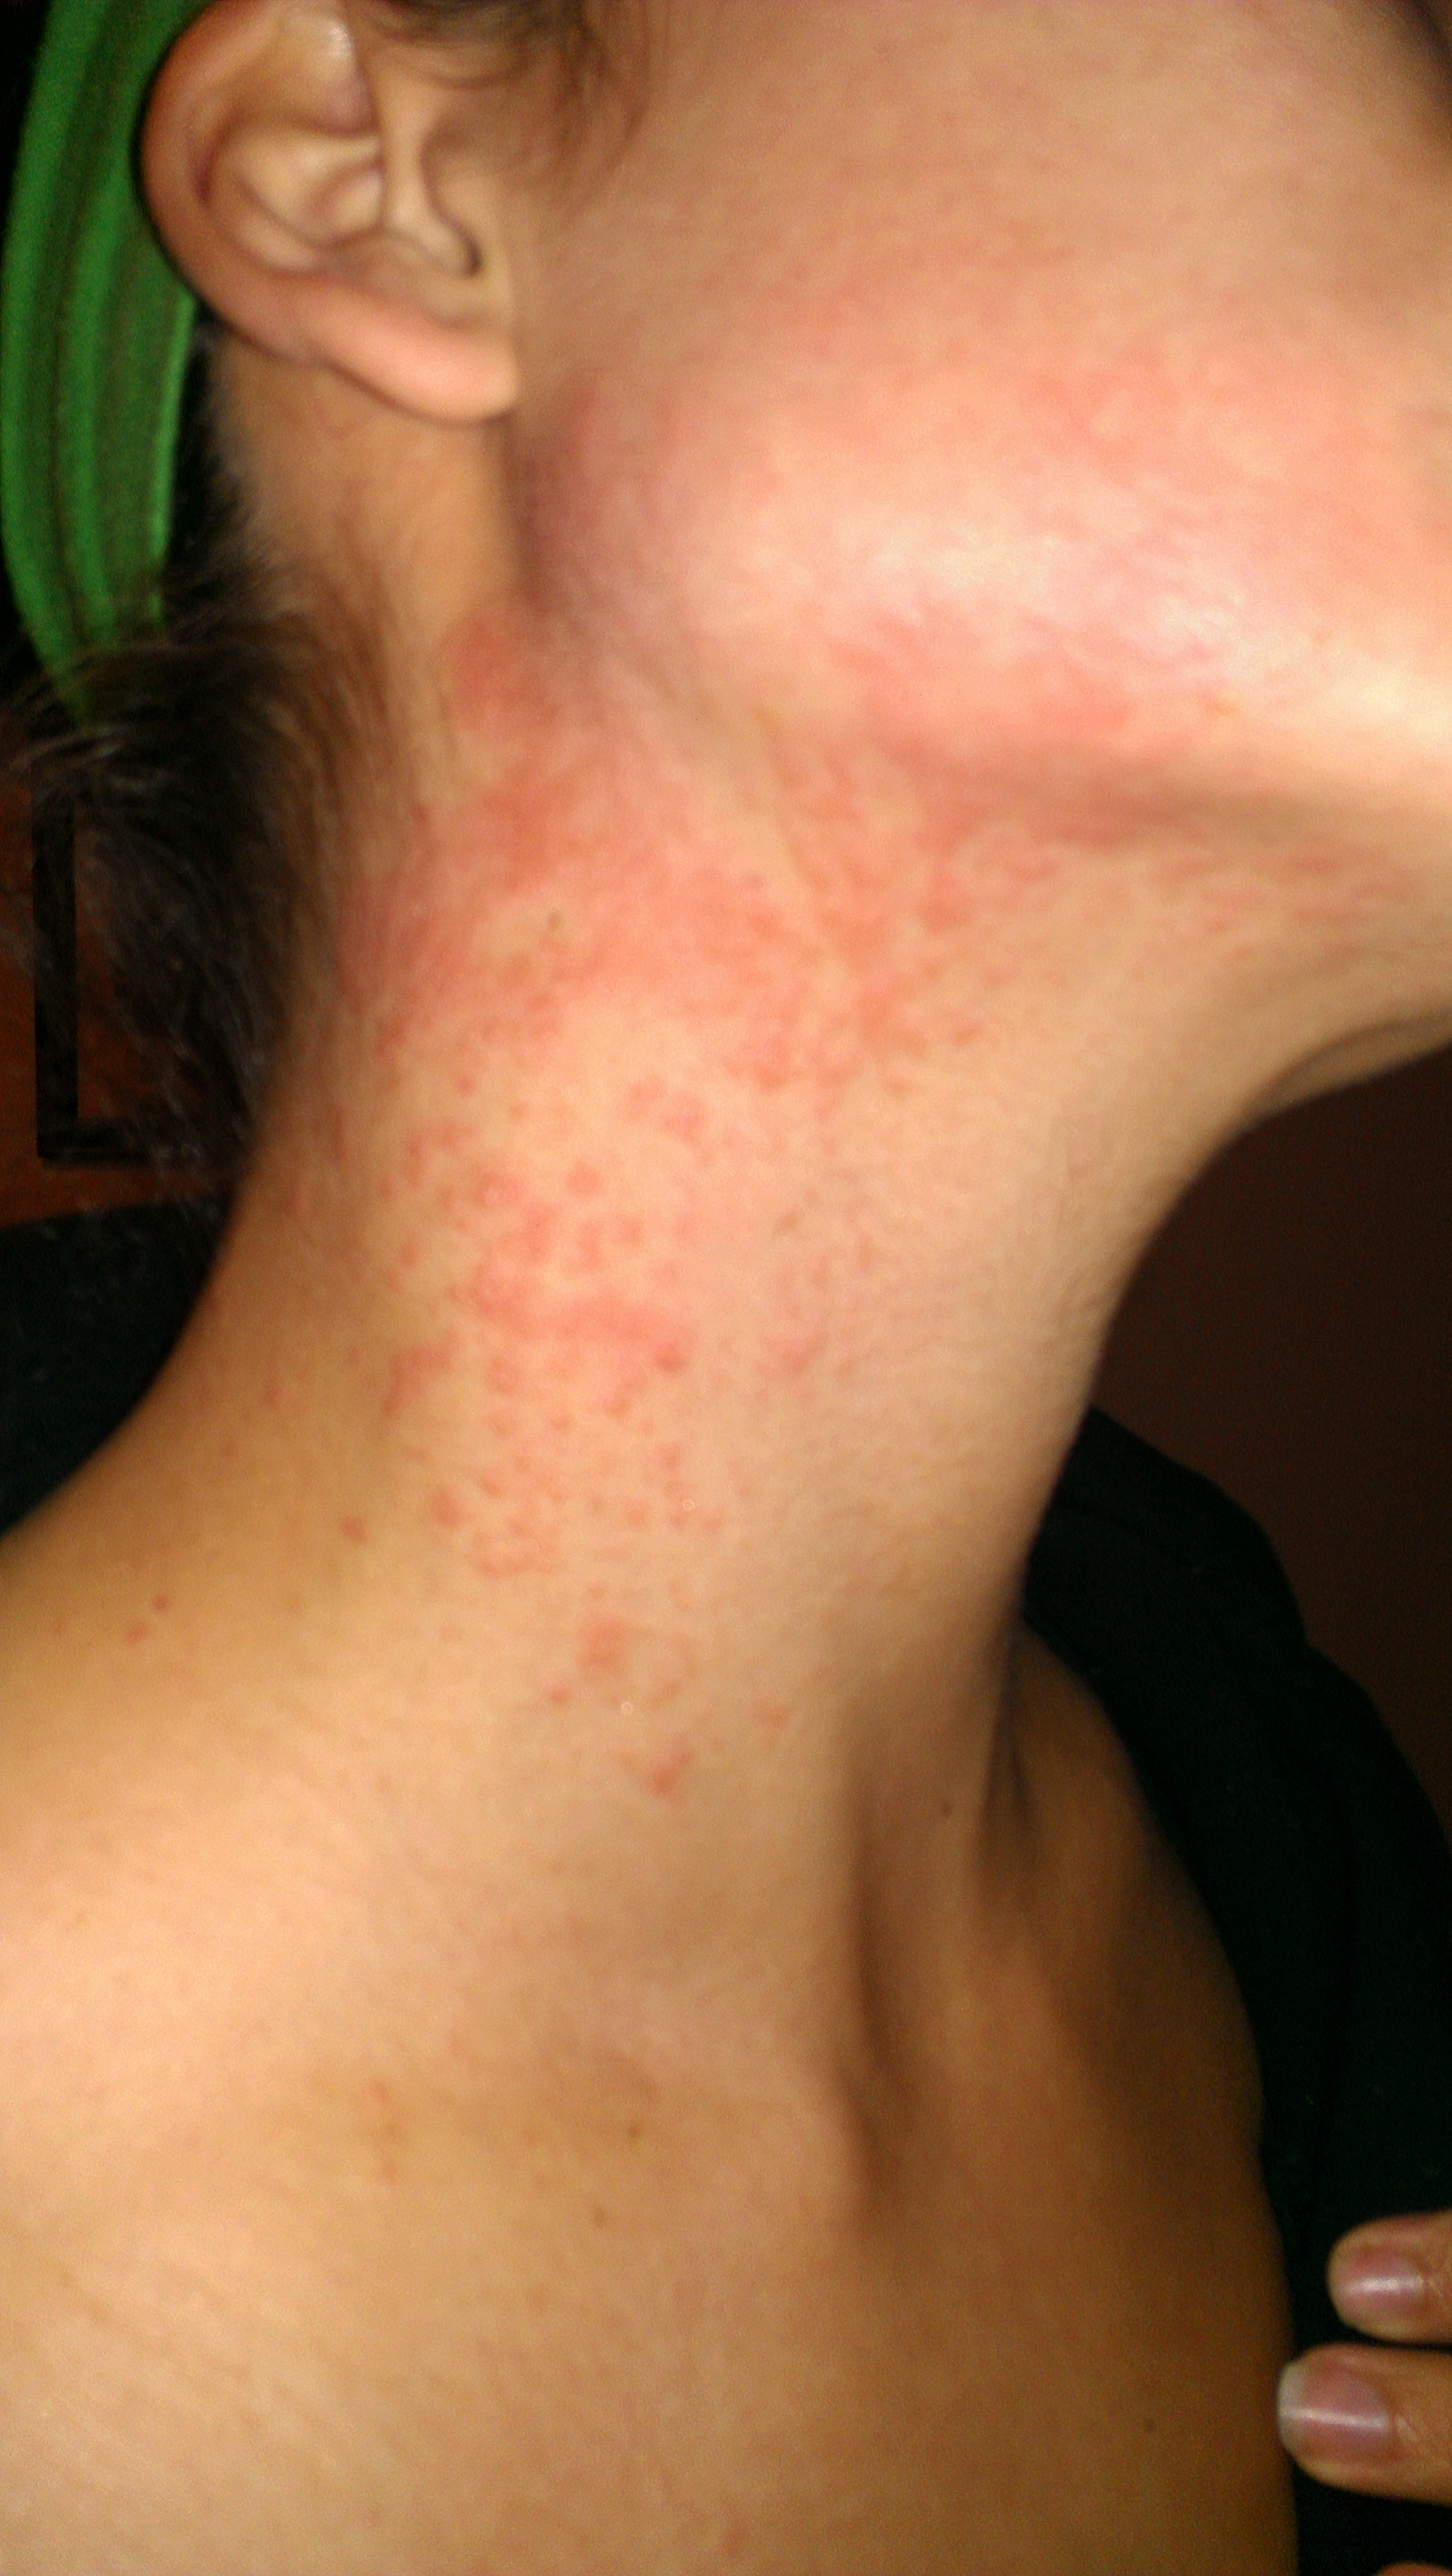 rash on my neck